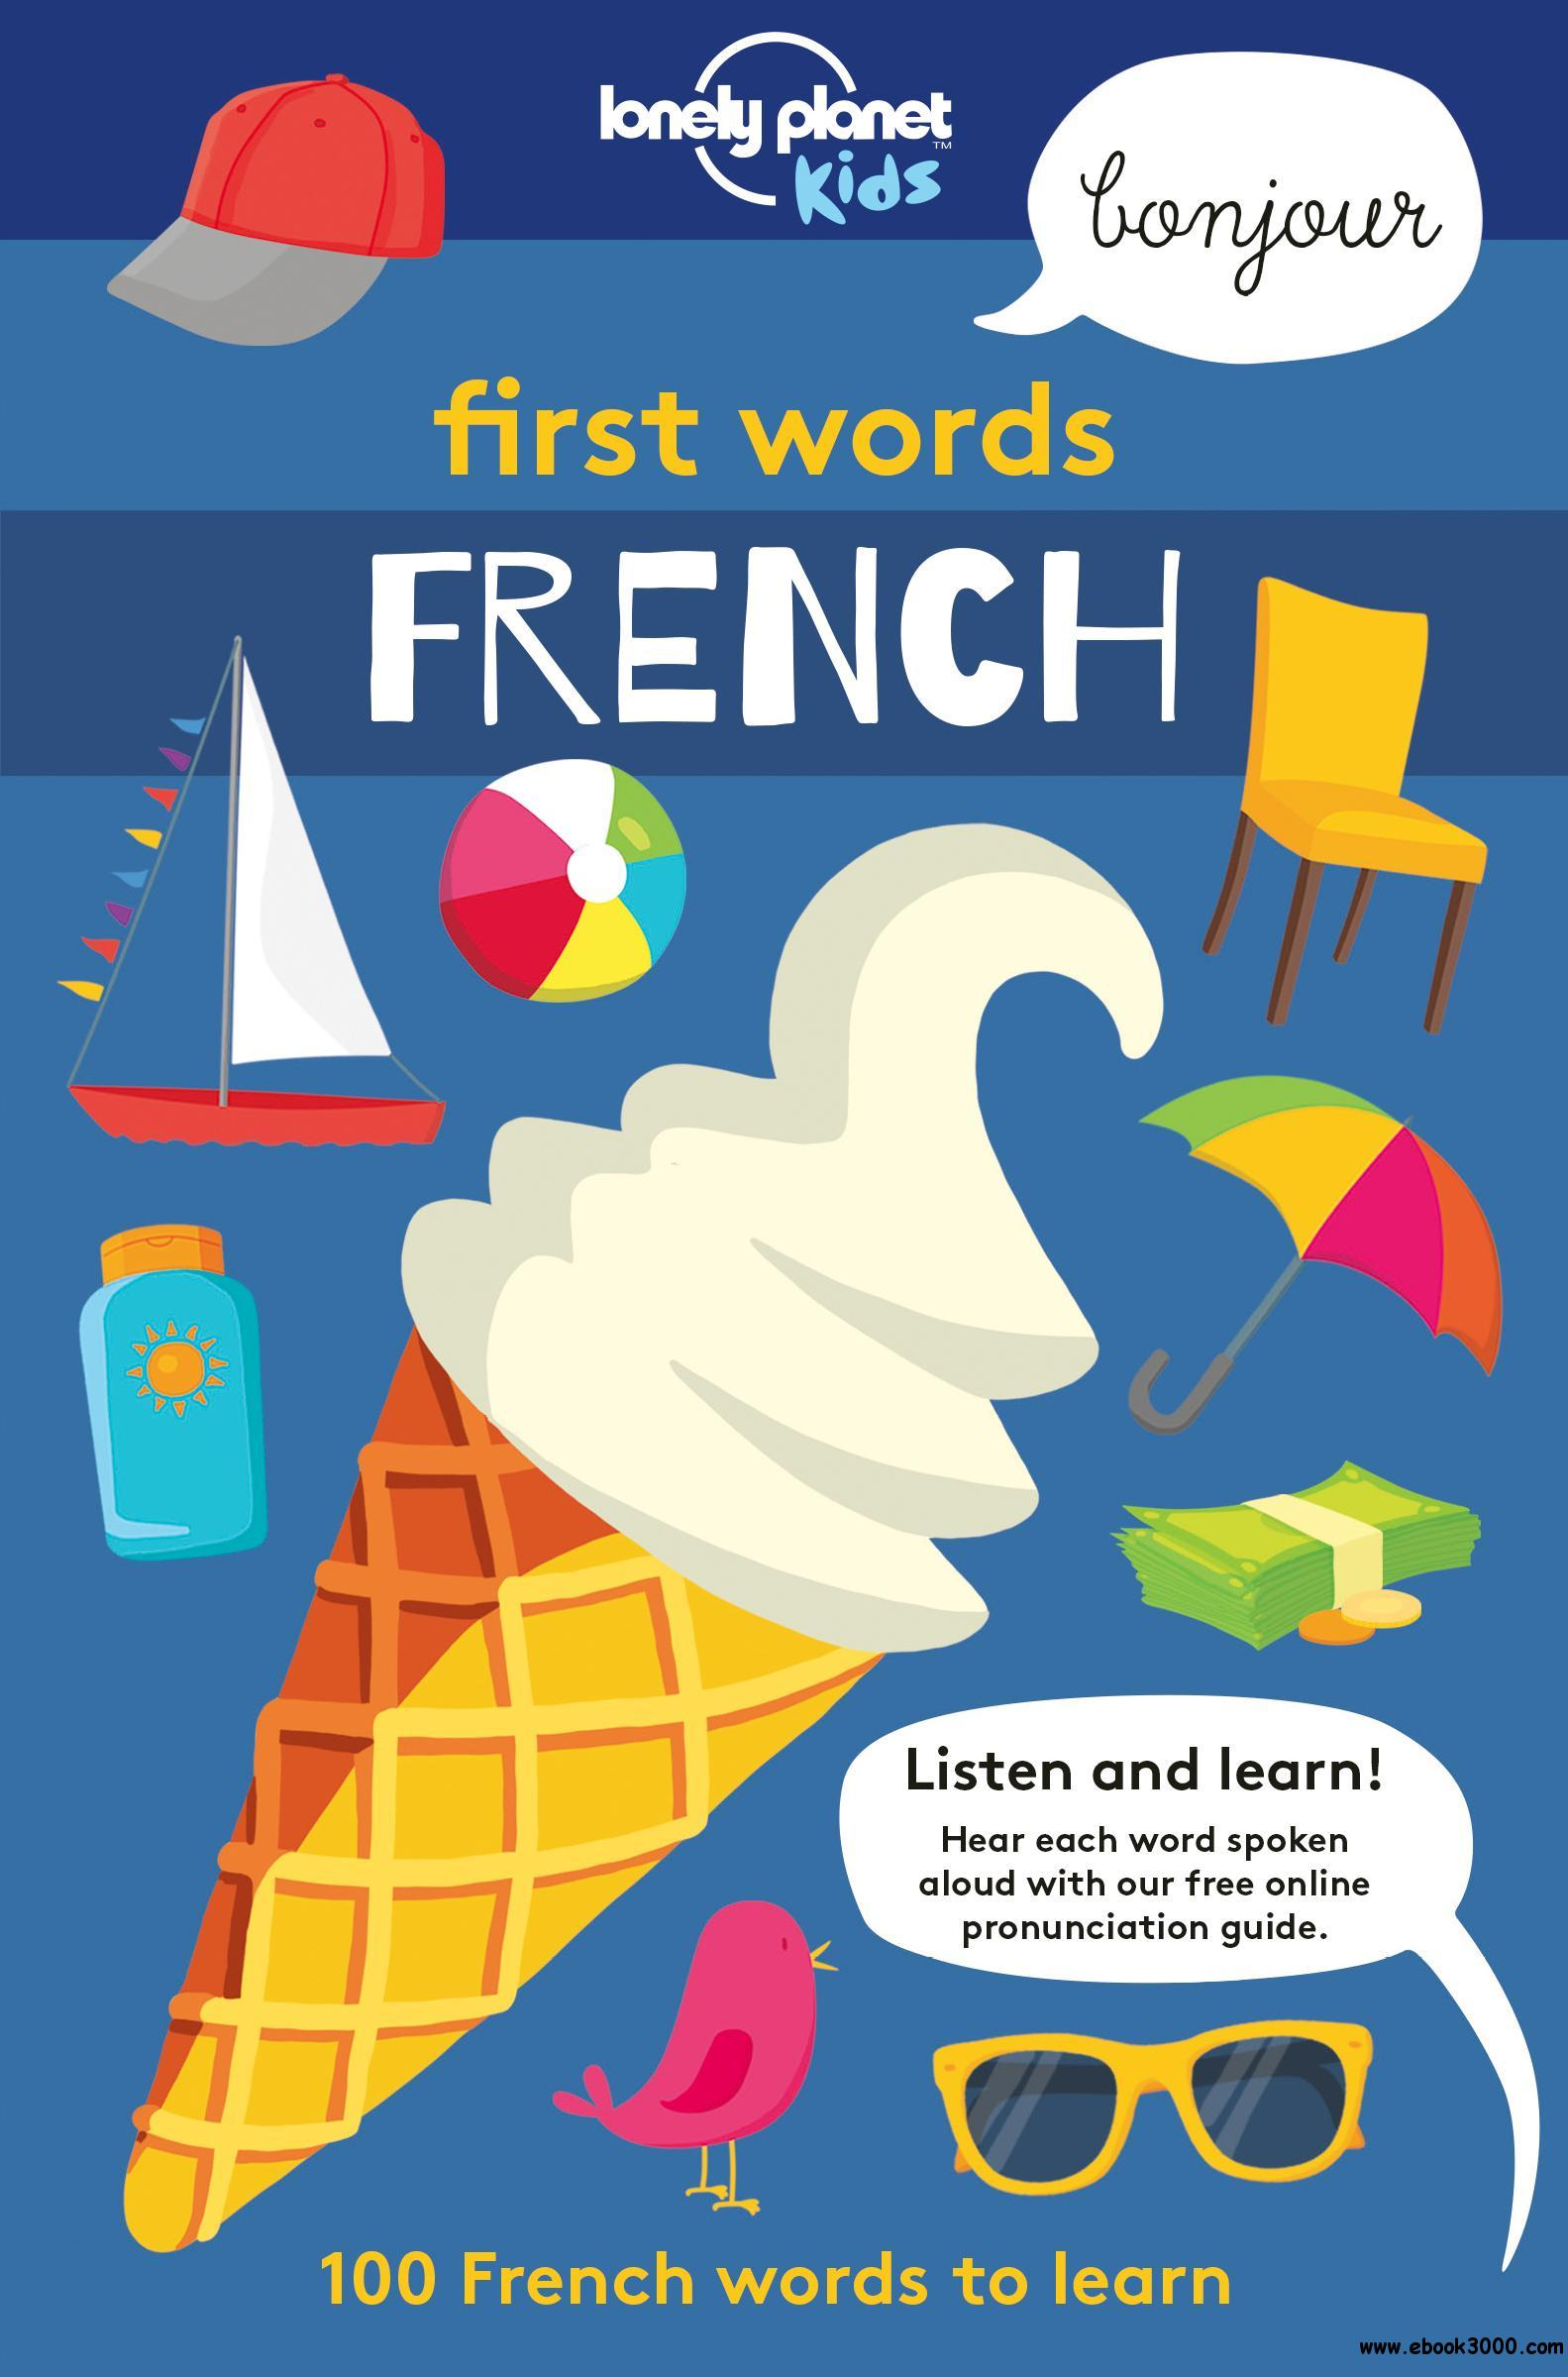 First Words - French: 100 French words to learn - Free